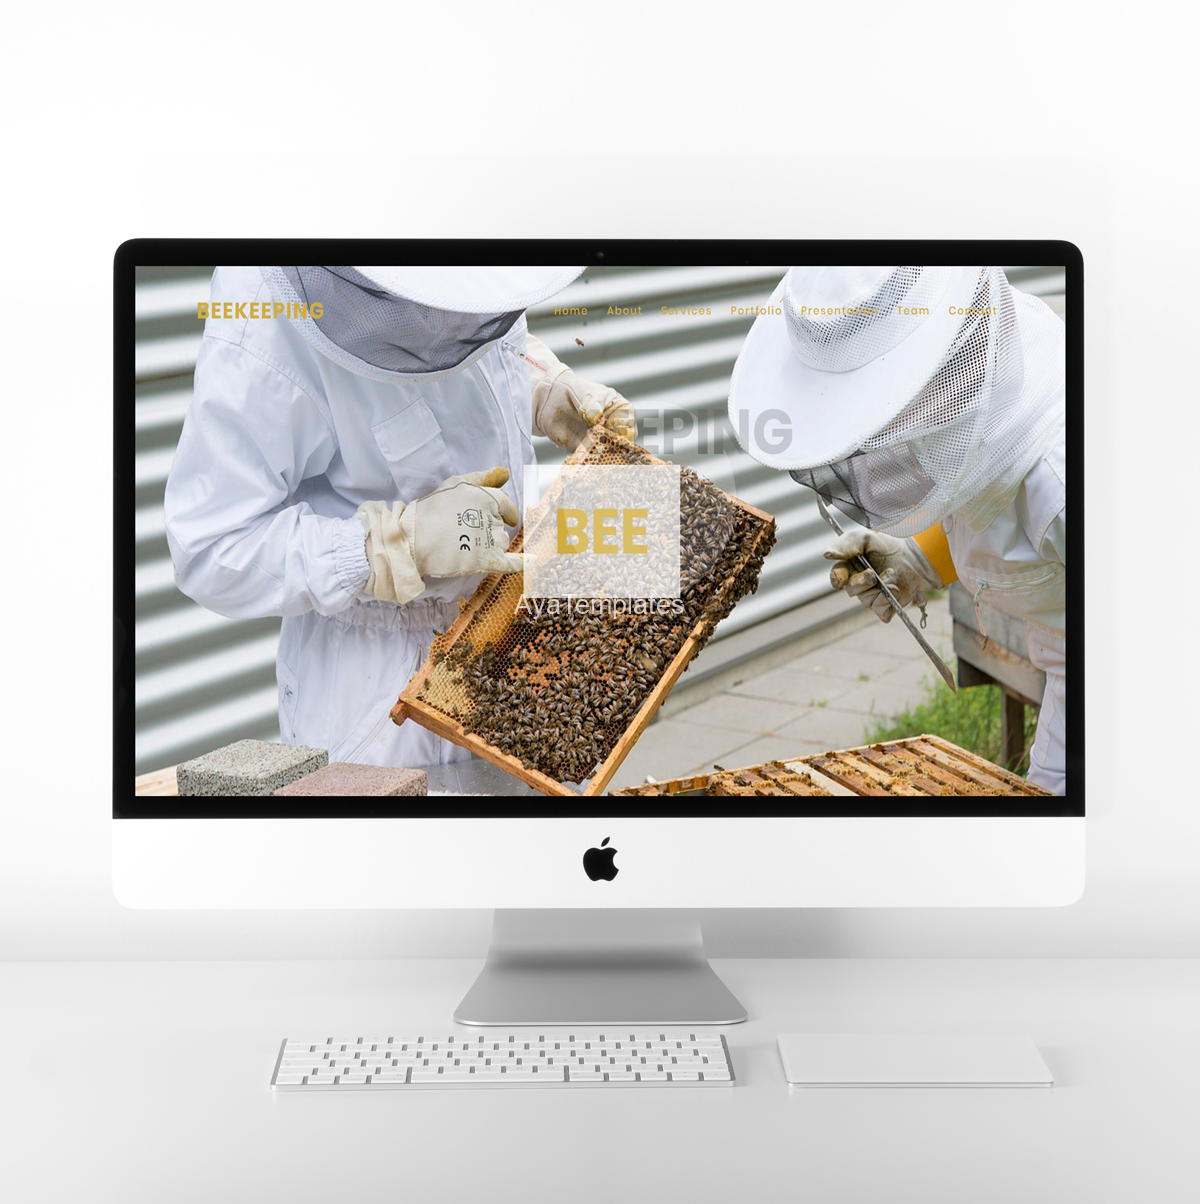 Beekeeping-one-page-website-ayatemplates